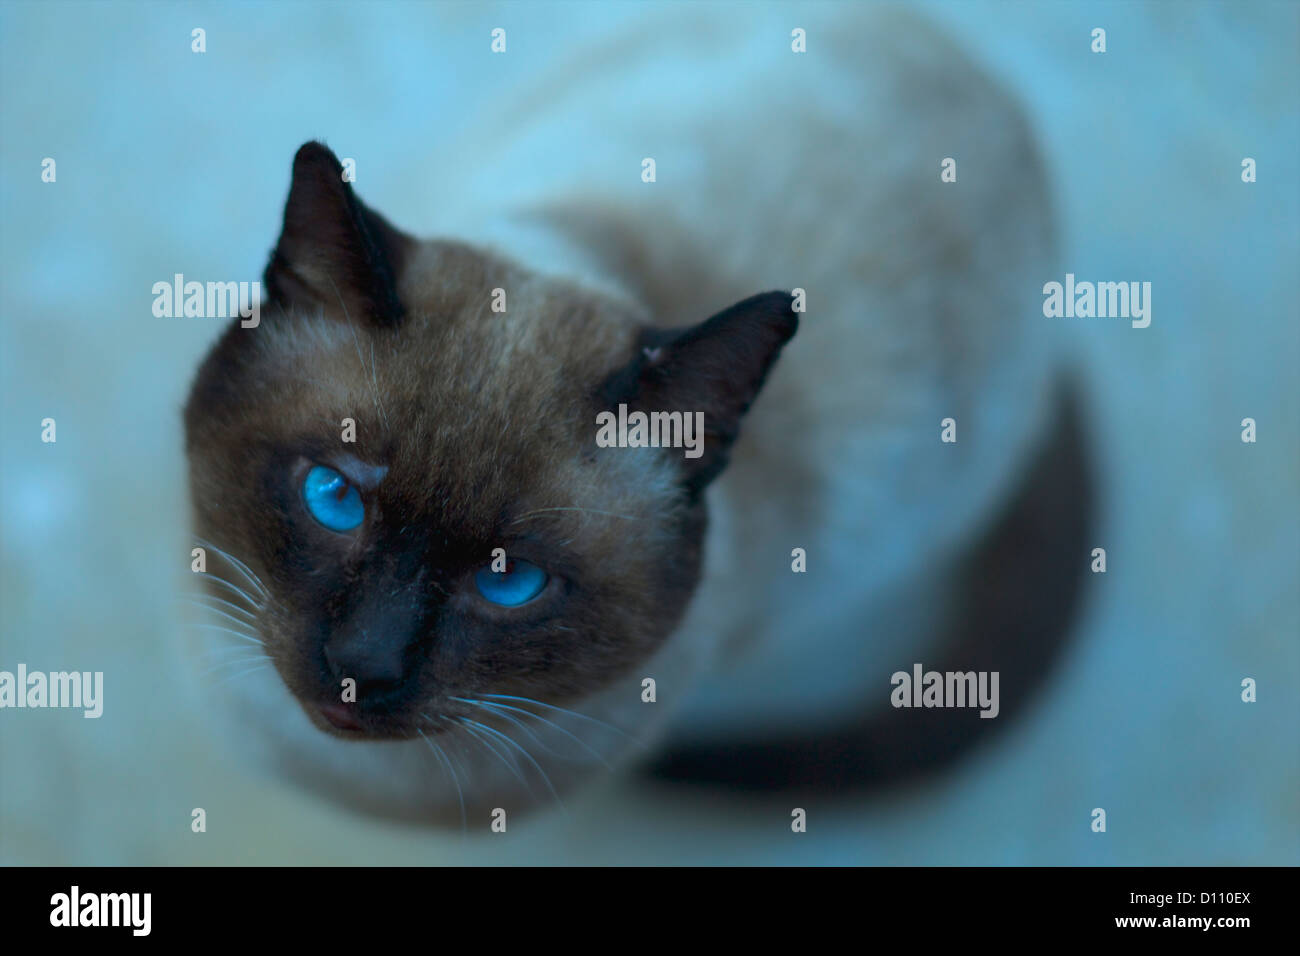 Gray and white cat looking up - Stock Image